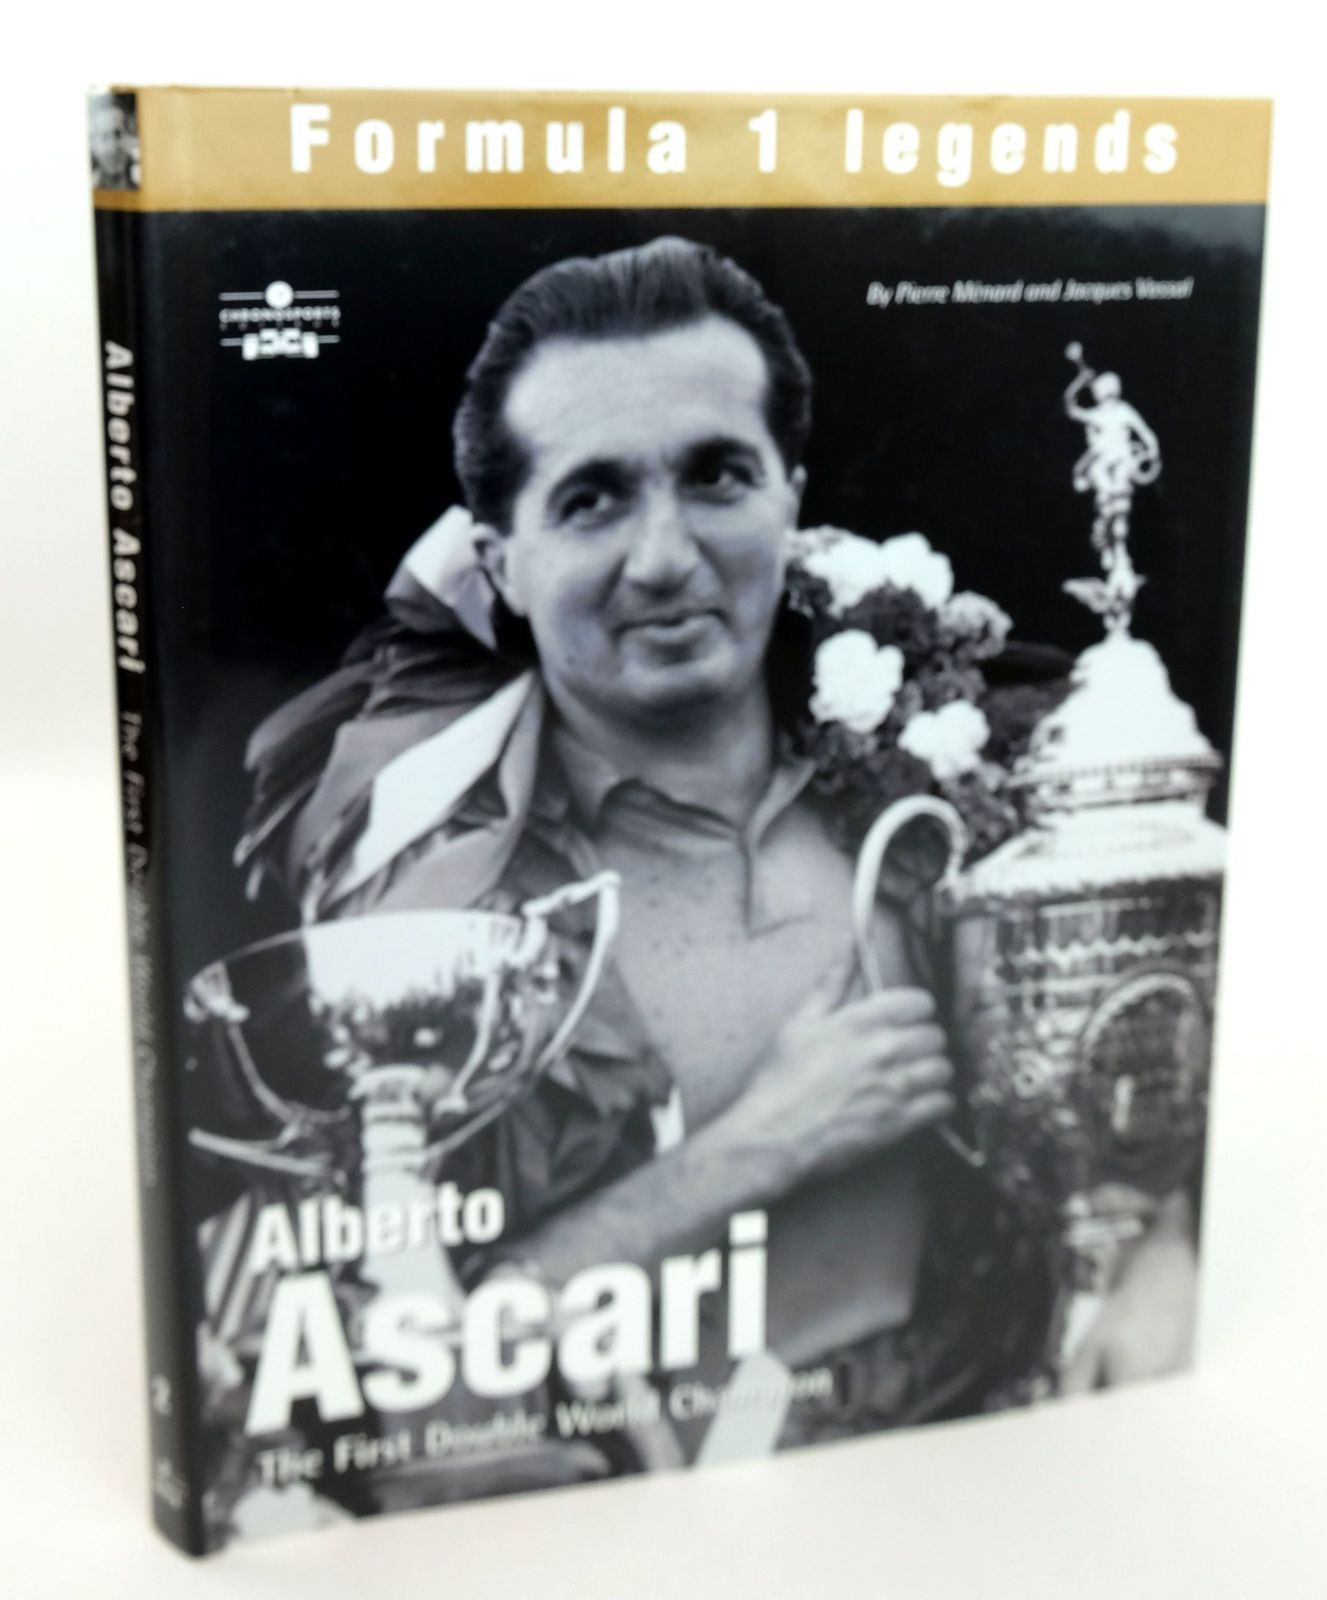 Photo of ALBERTO ASCARI: THE FIRST DOUBLE WORLD CHAMPION written by Menard, Pierre Vassal, Jacques published by Chronosports (STOCK CODE: 1819134)  for sale by Stella & Rose's Books